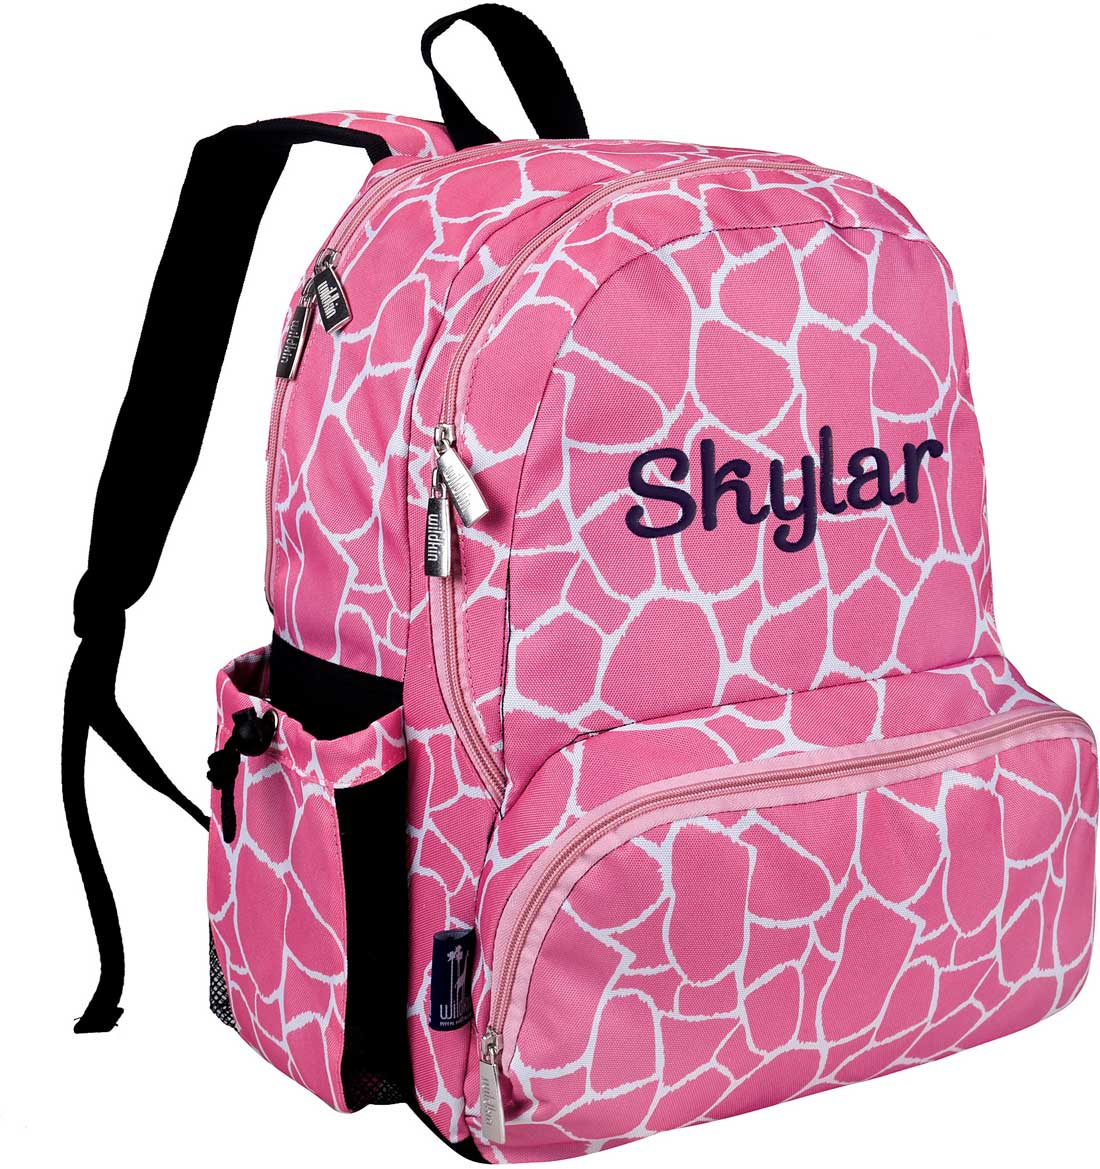 Personalized School Backpacks IXwdjiQV